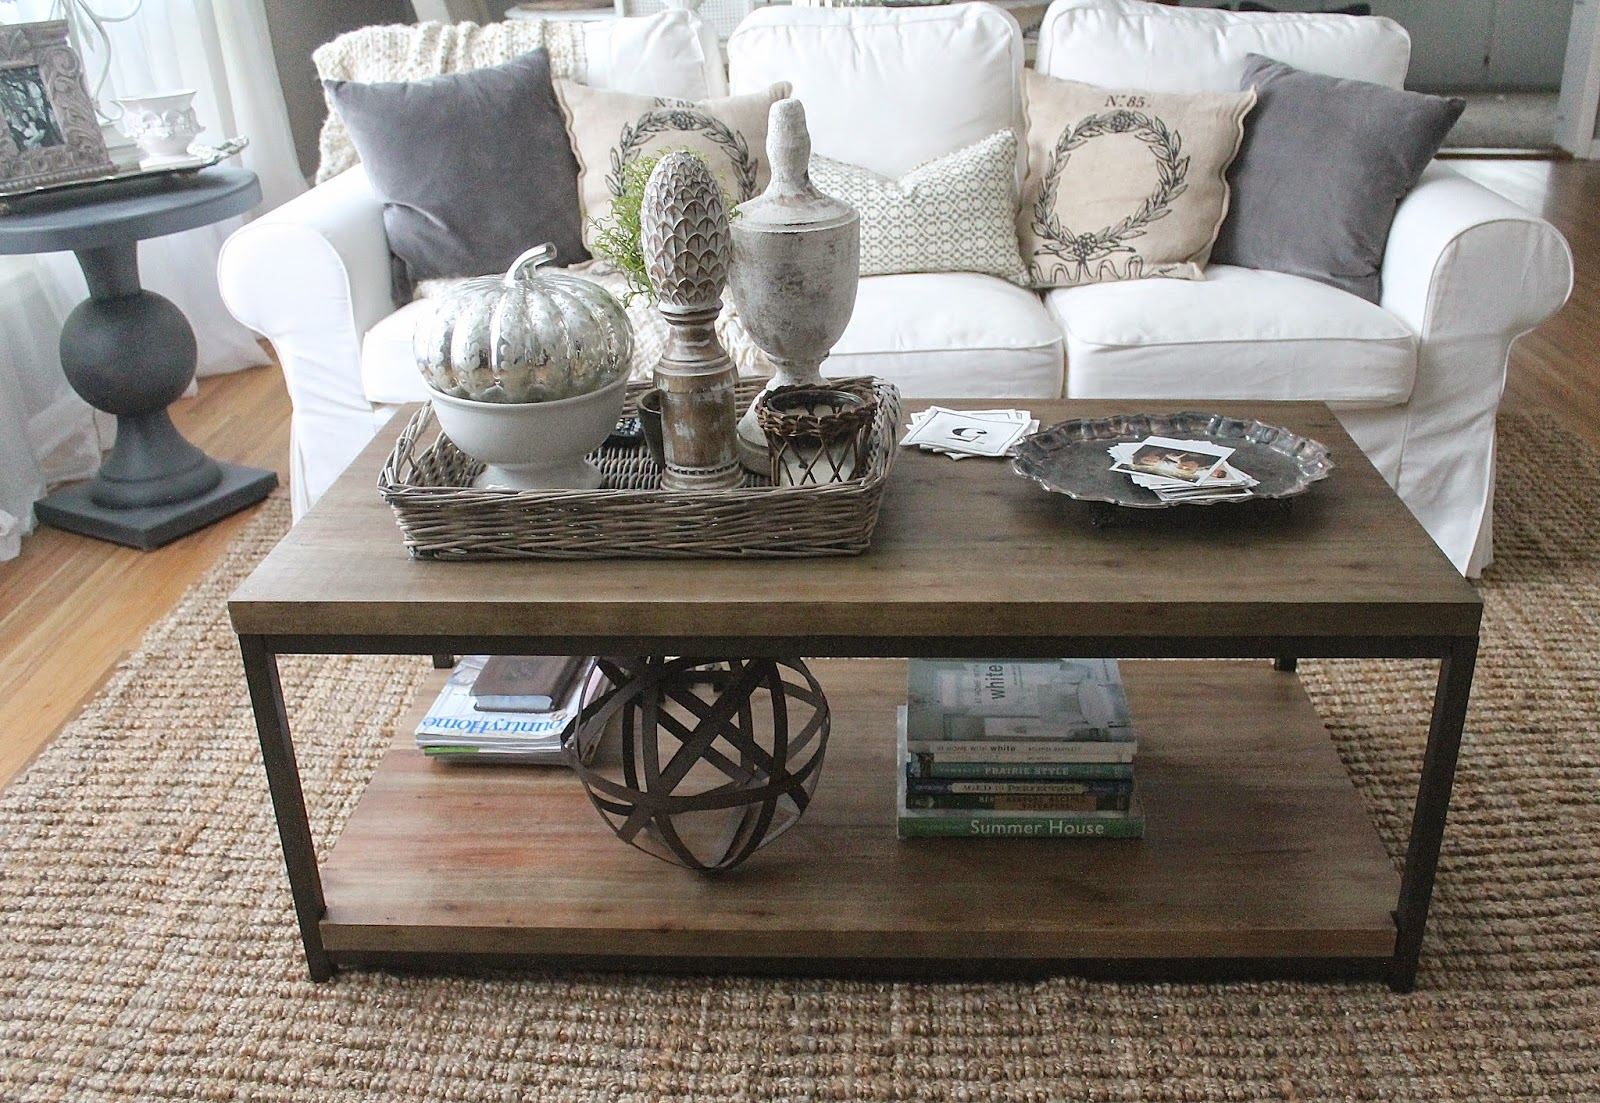 Living room table decorations - Rustic Coffee Table Decor With An Industrial Touch